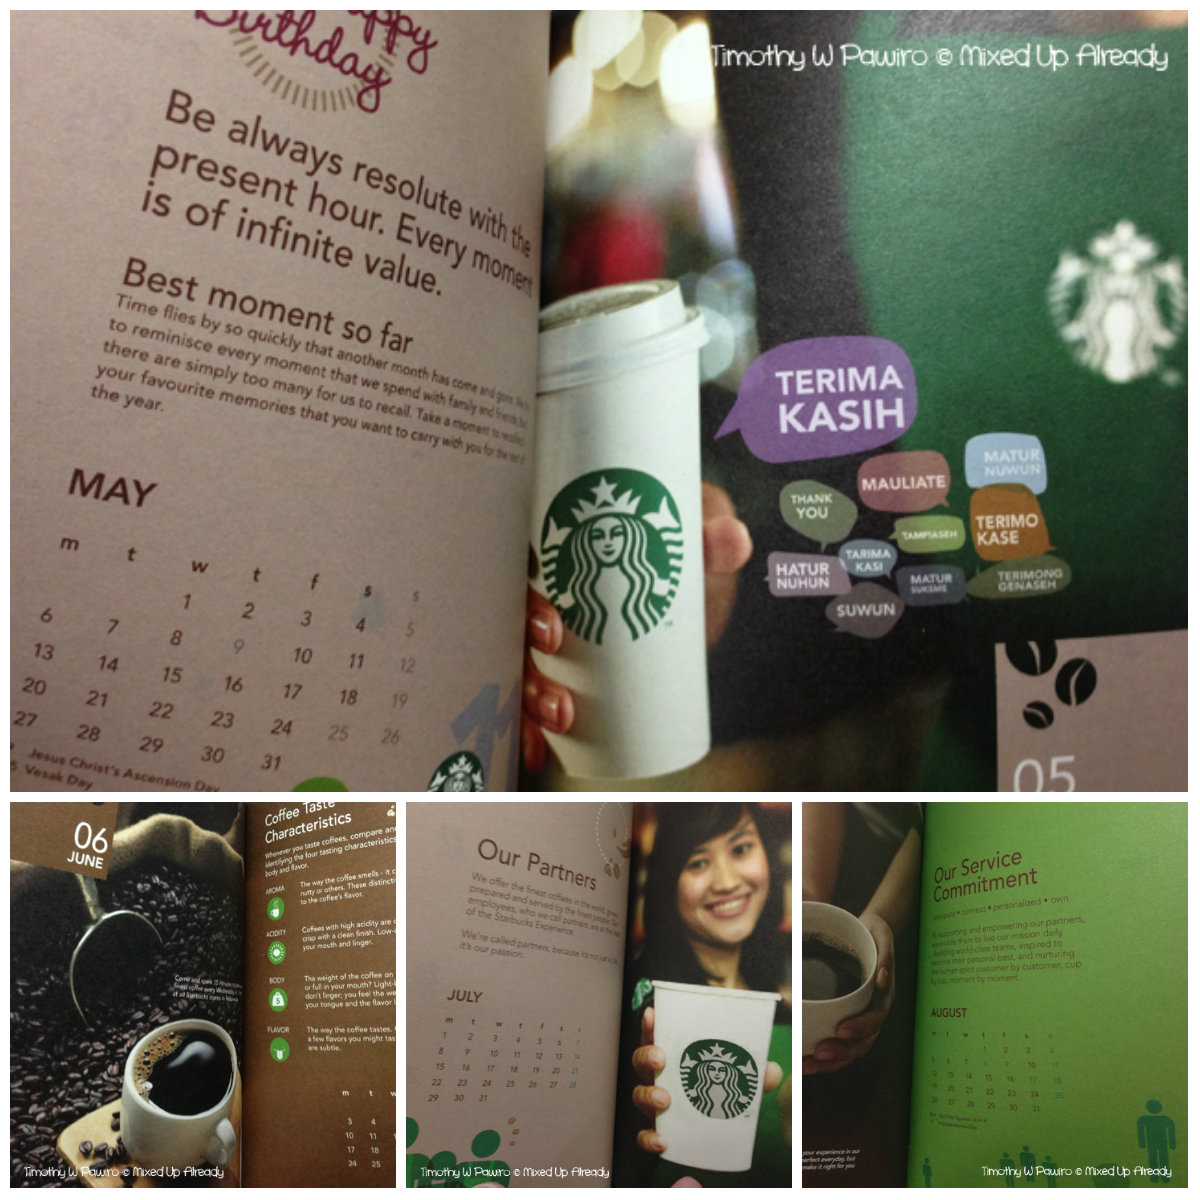 Starbucks Indonesia Planner 2013 (May - Aug)